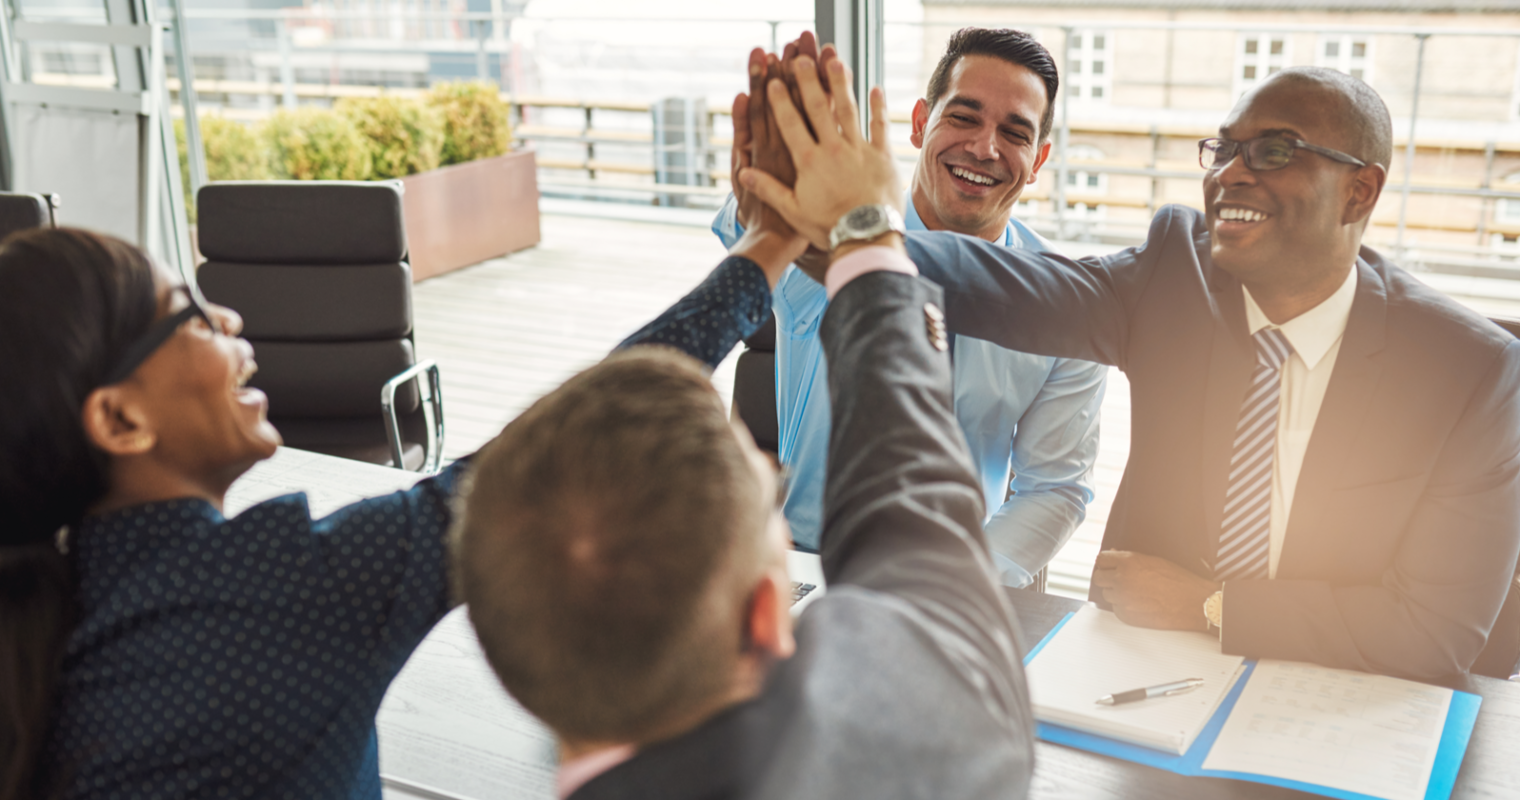 5 Effective Ways to Motivate Your Marketing Team